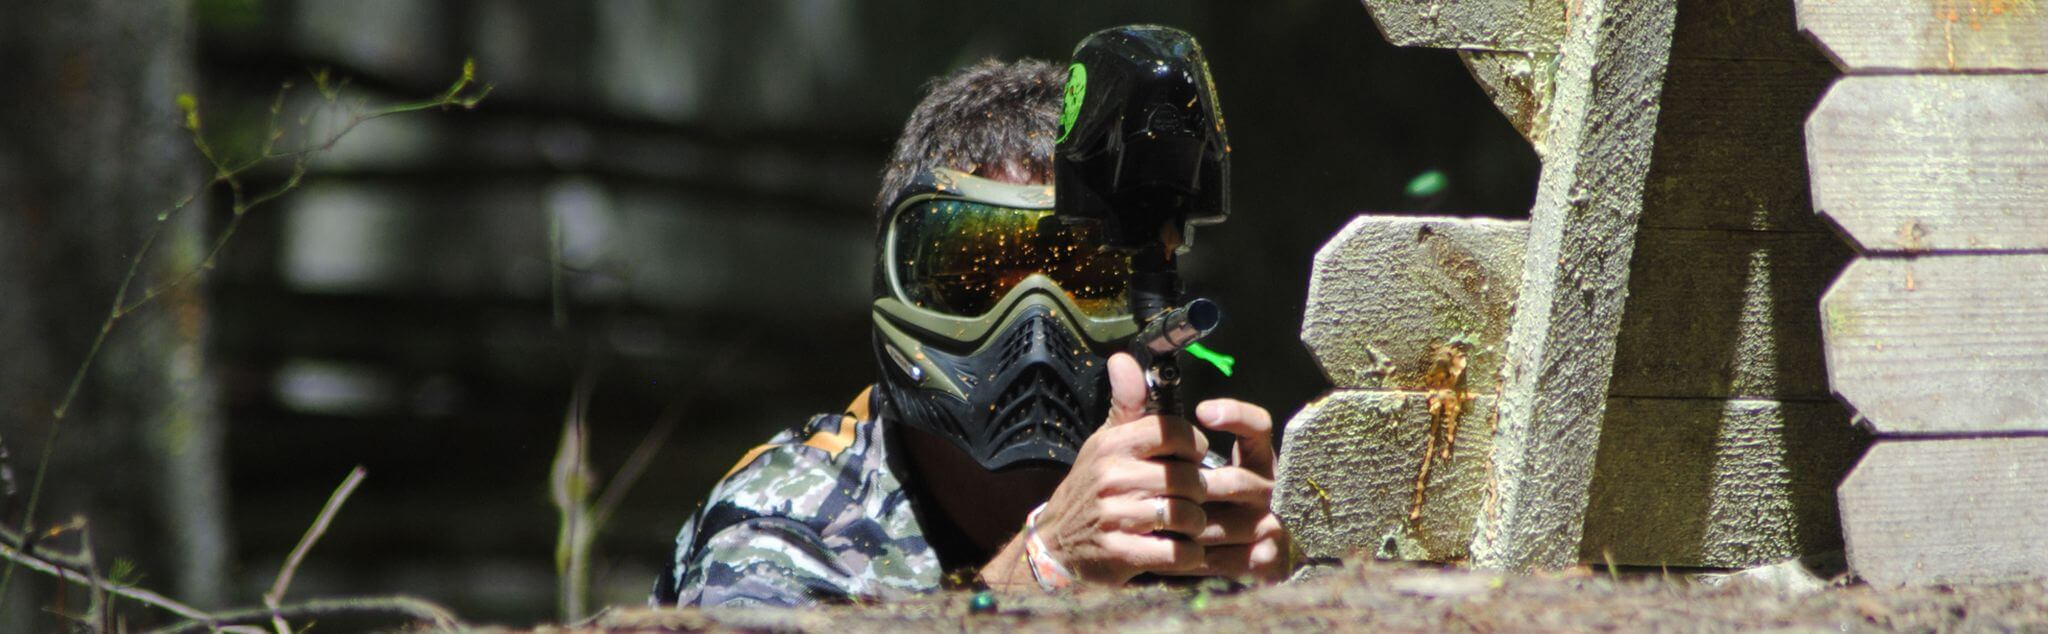 Paintball en Padiernos